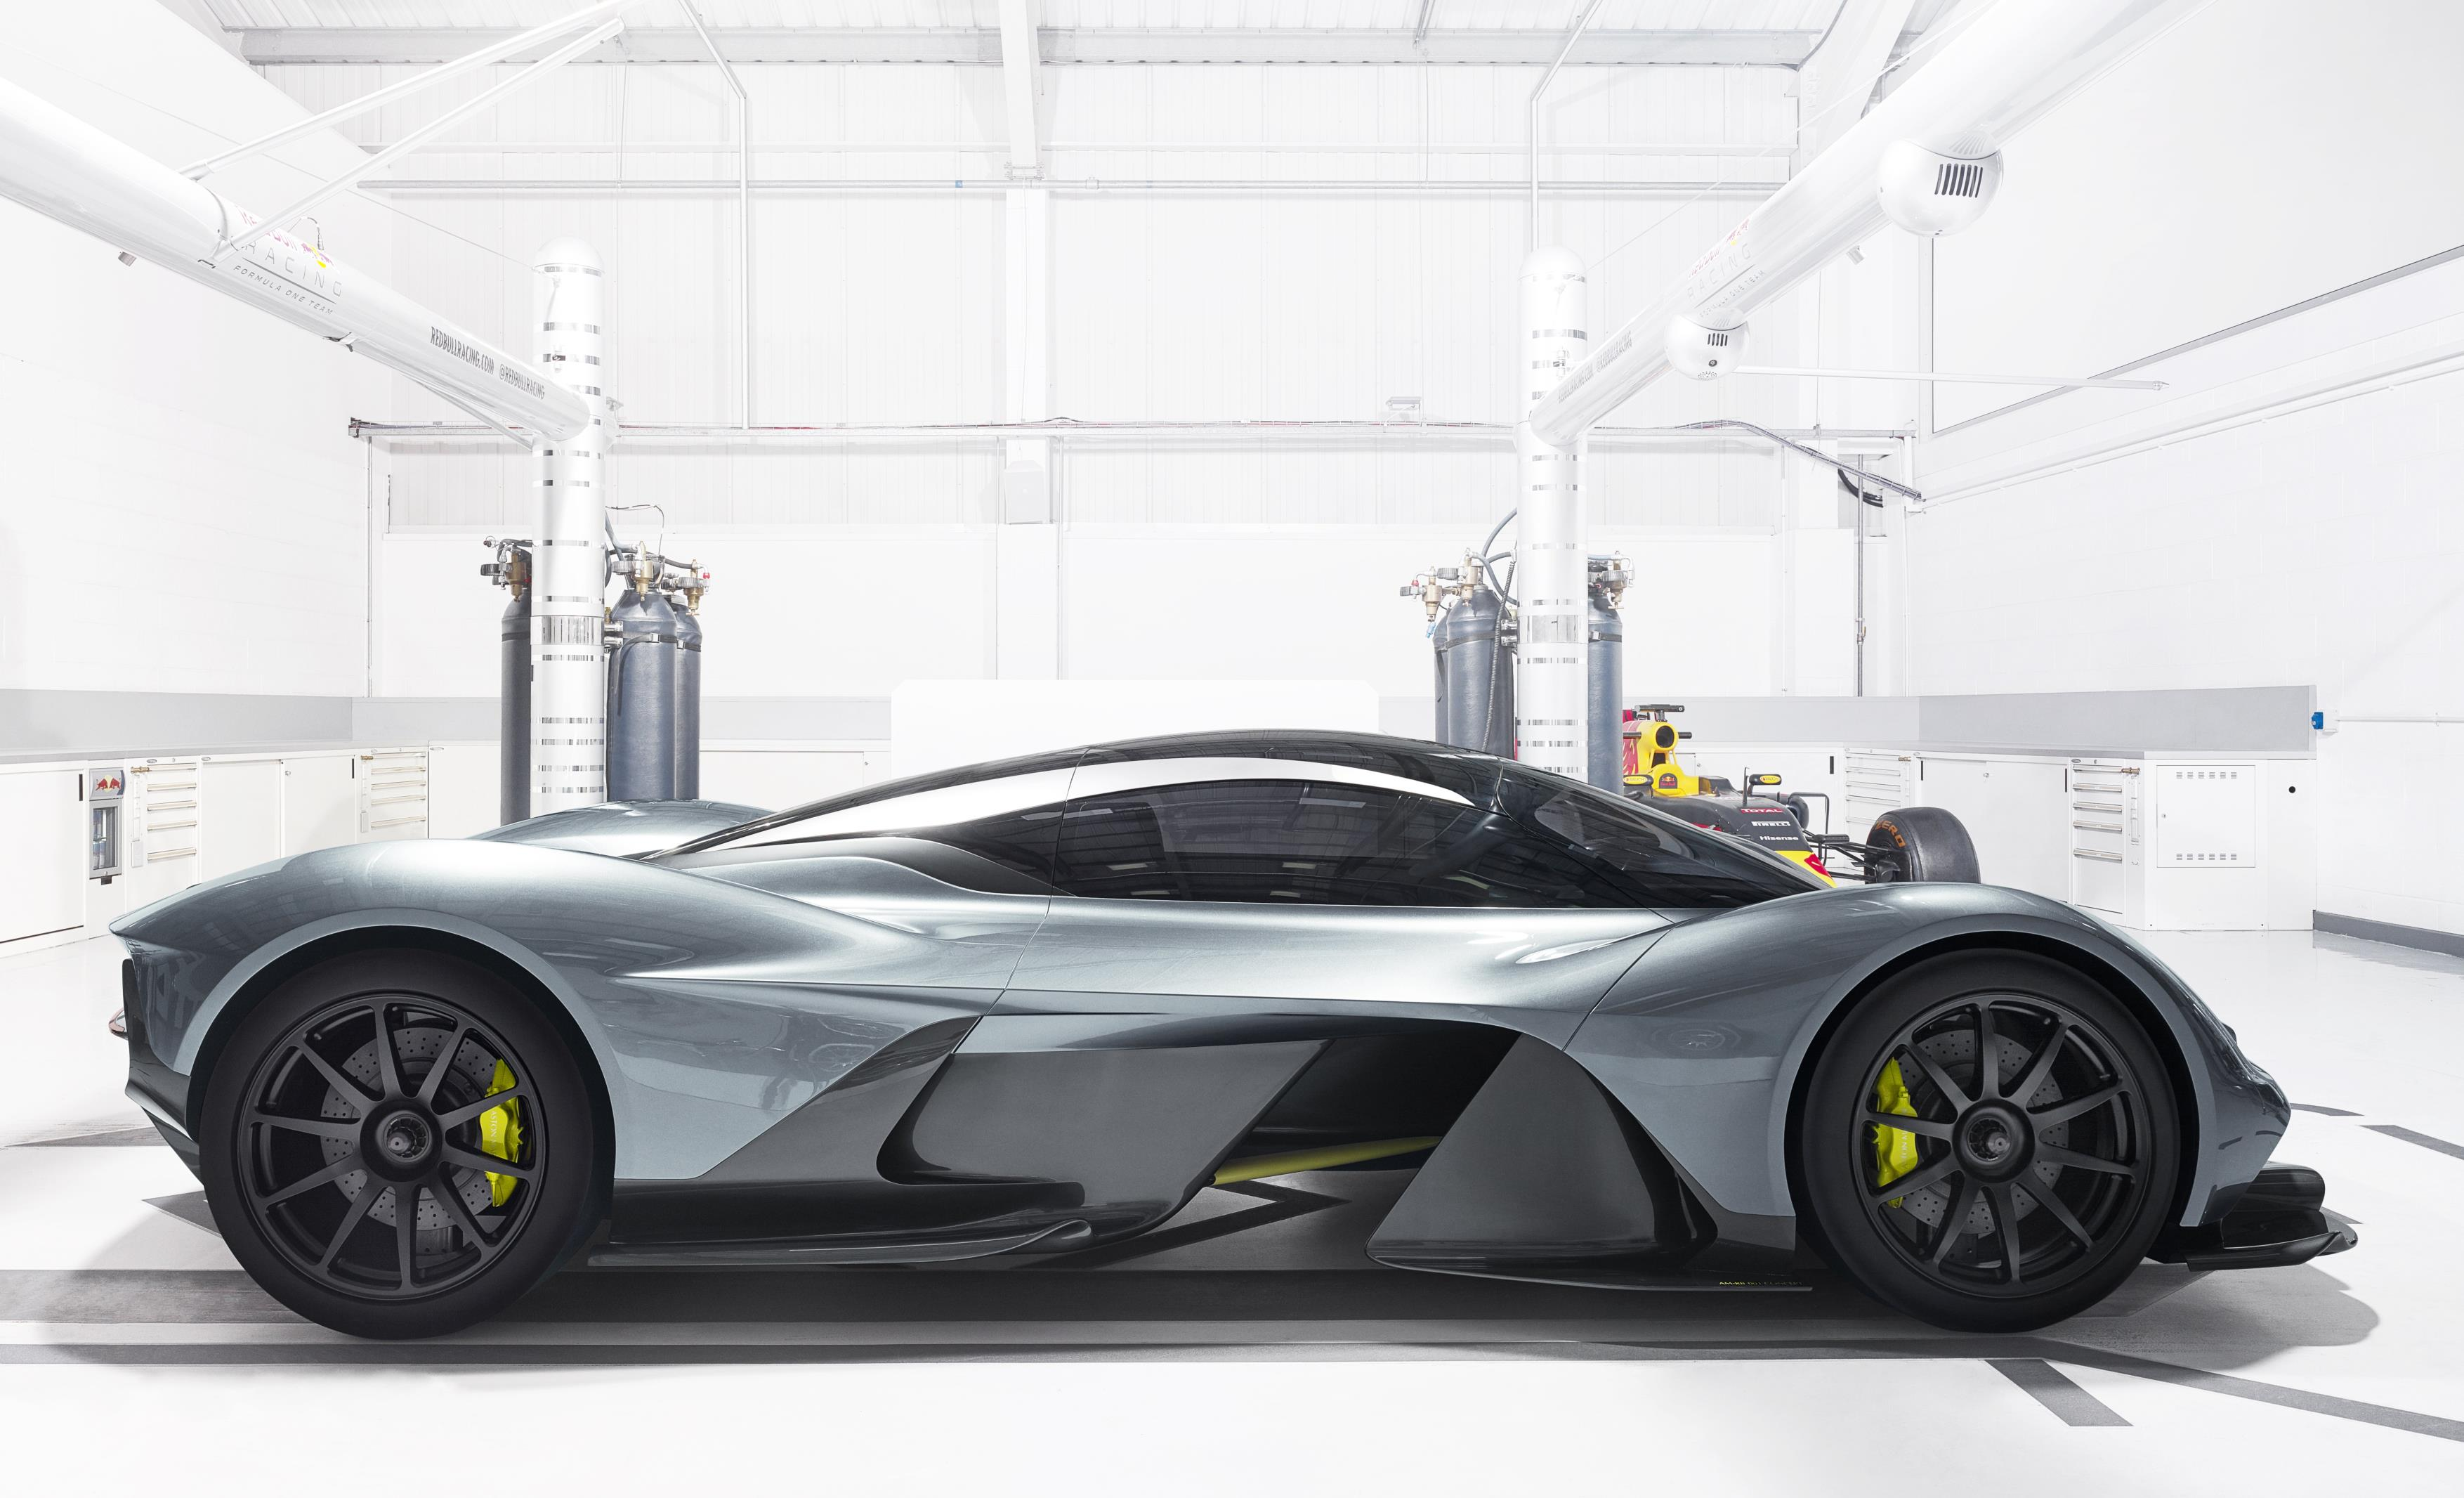 Aston Martin AMRB Hypercar To Cost Million A Pop - How much does a aston martin cost